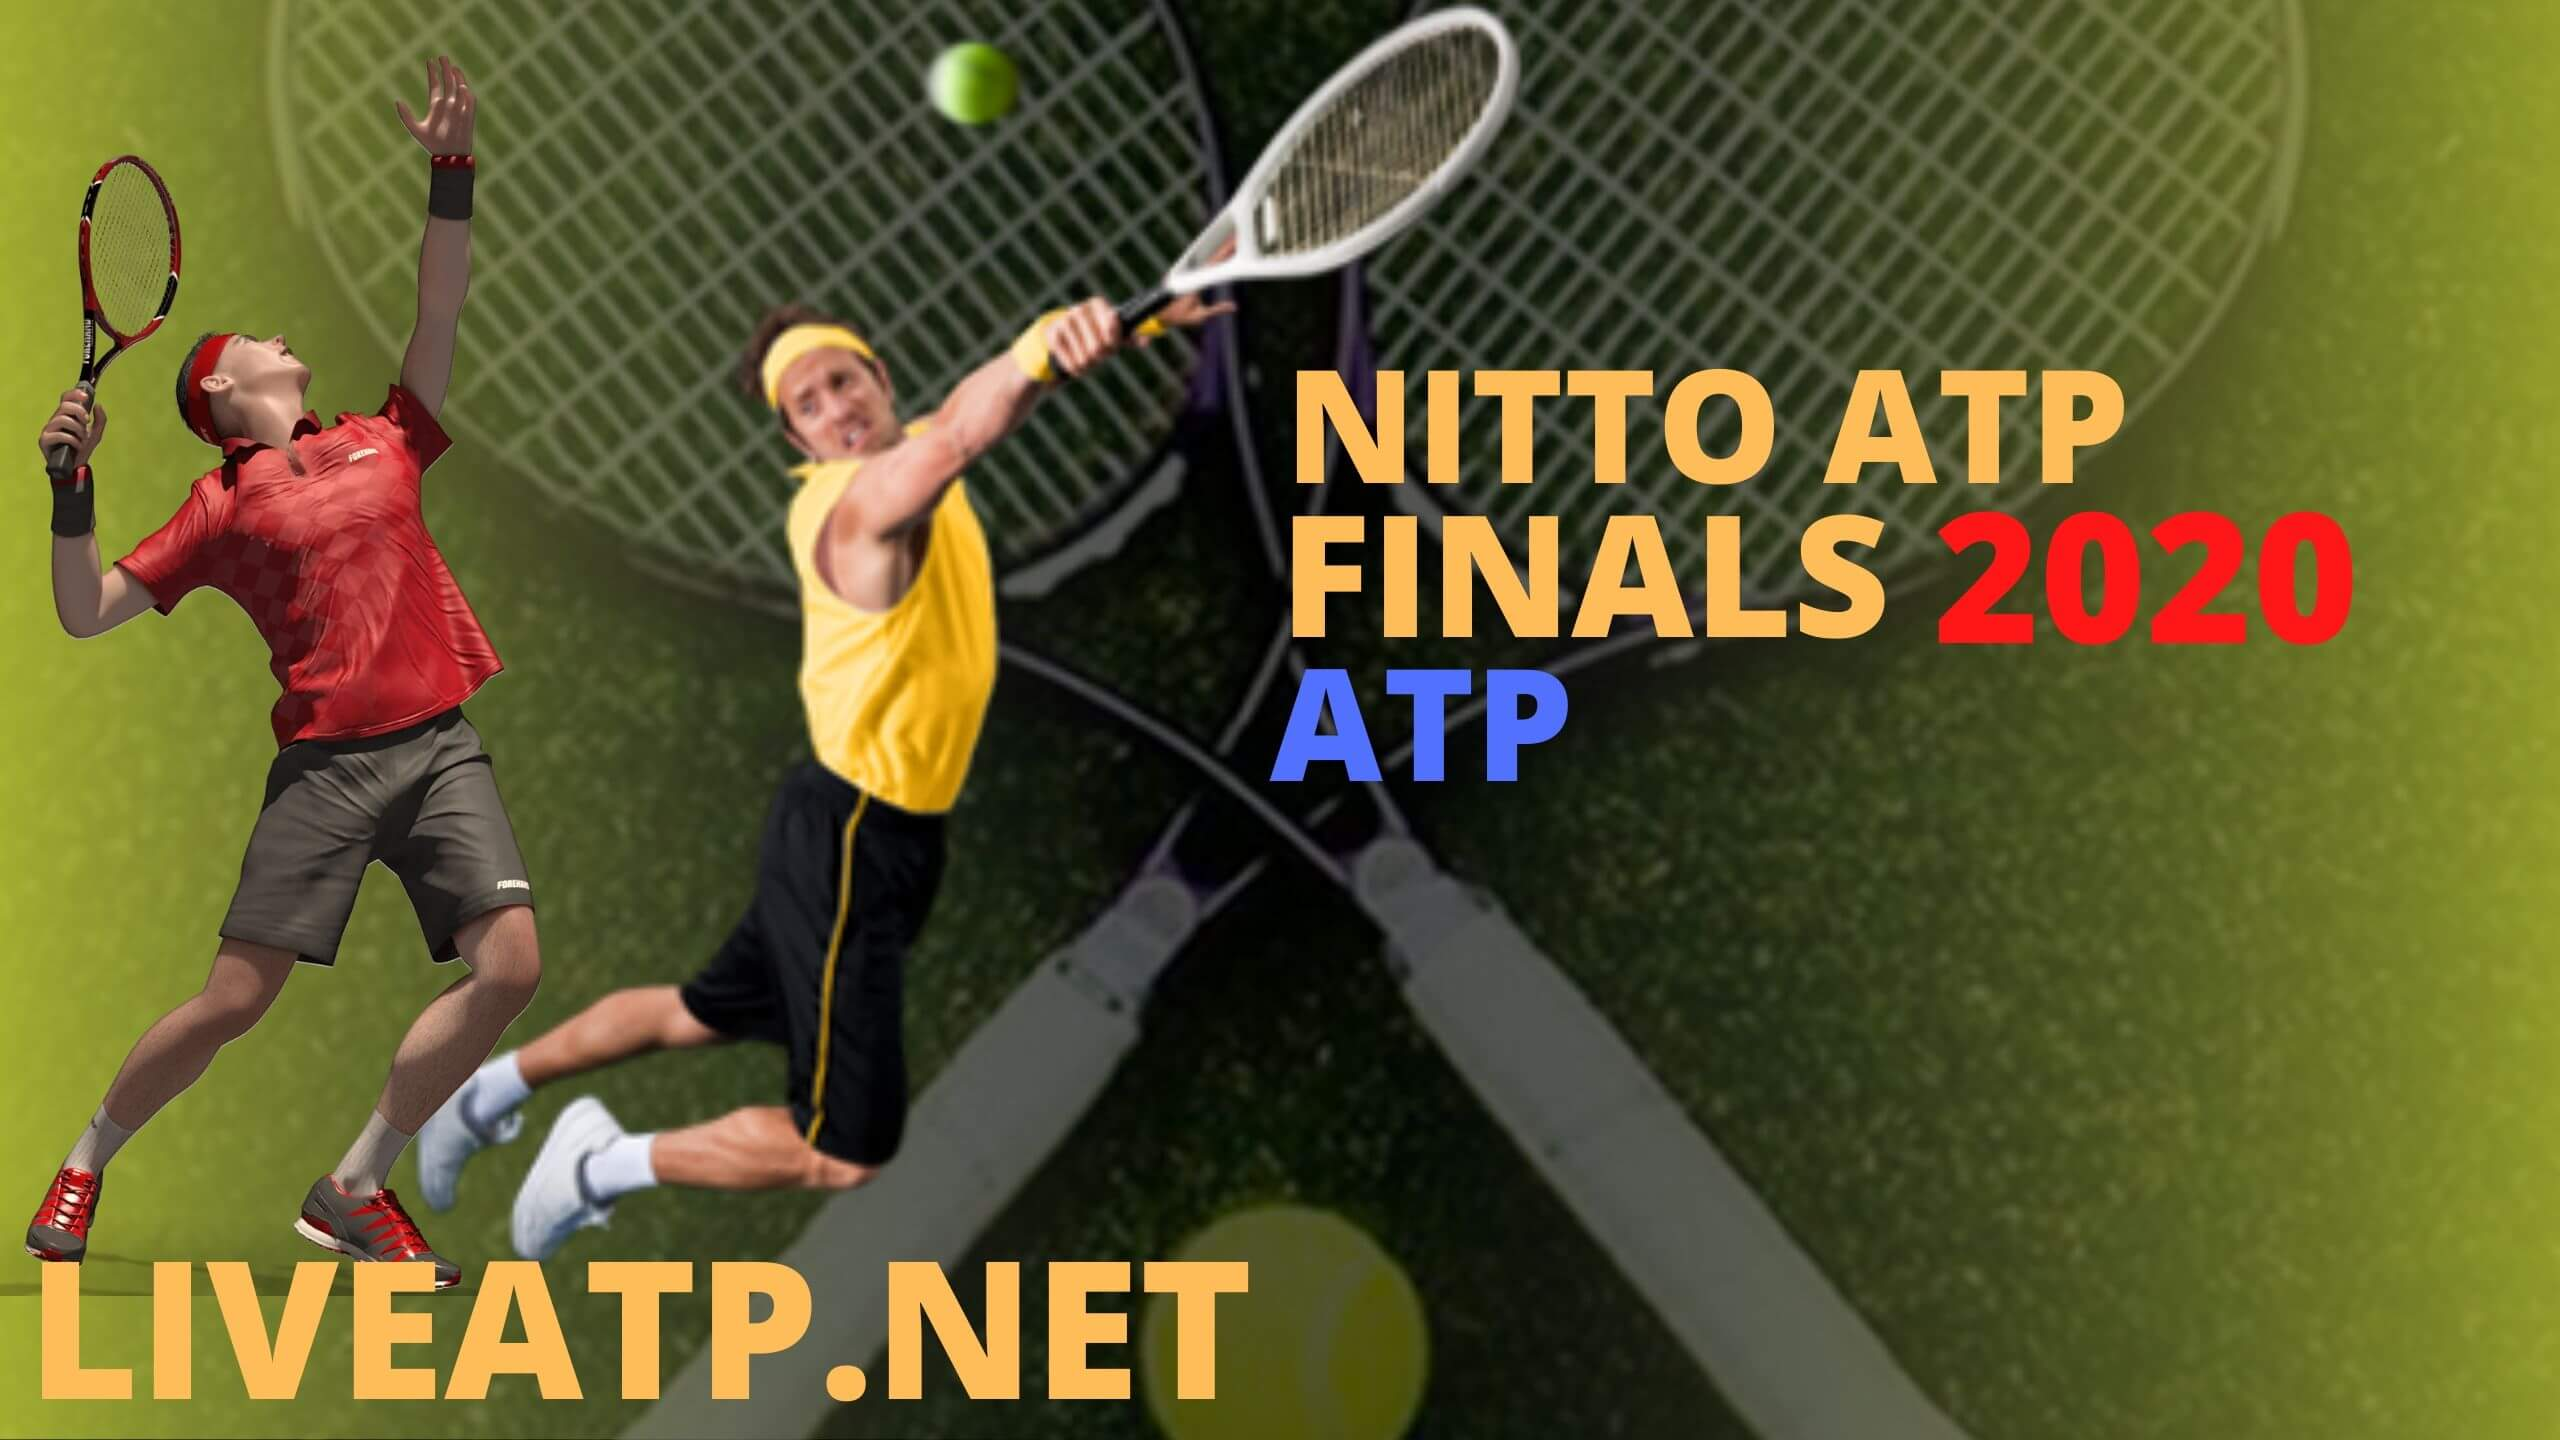 Nitto ATP Finals Live Stream 2020 | Semi Final